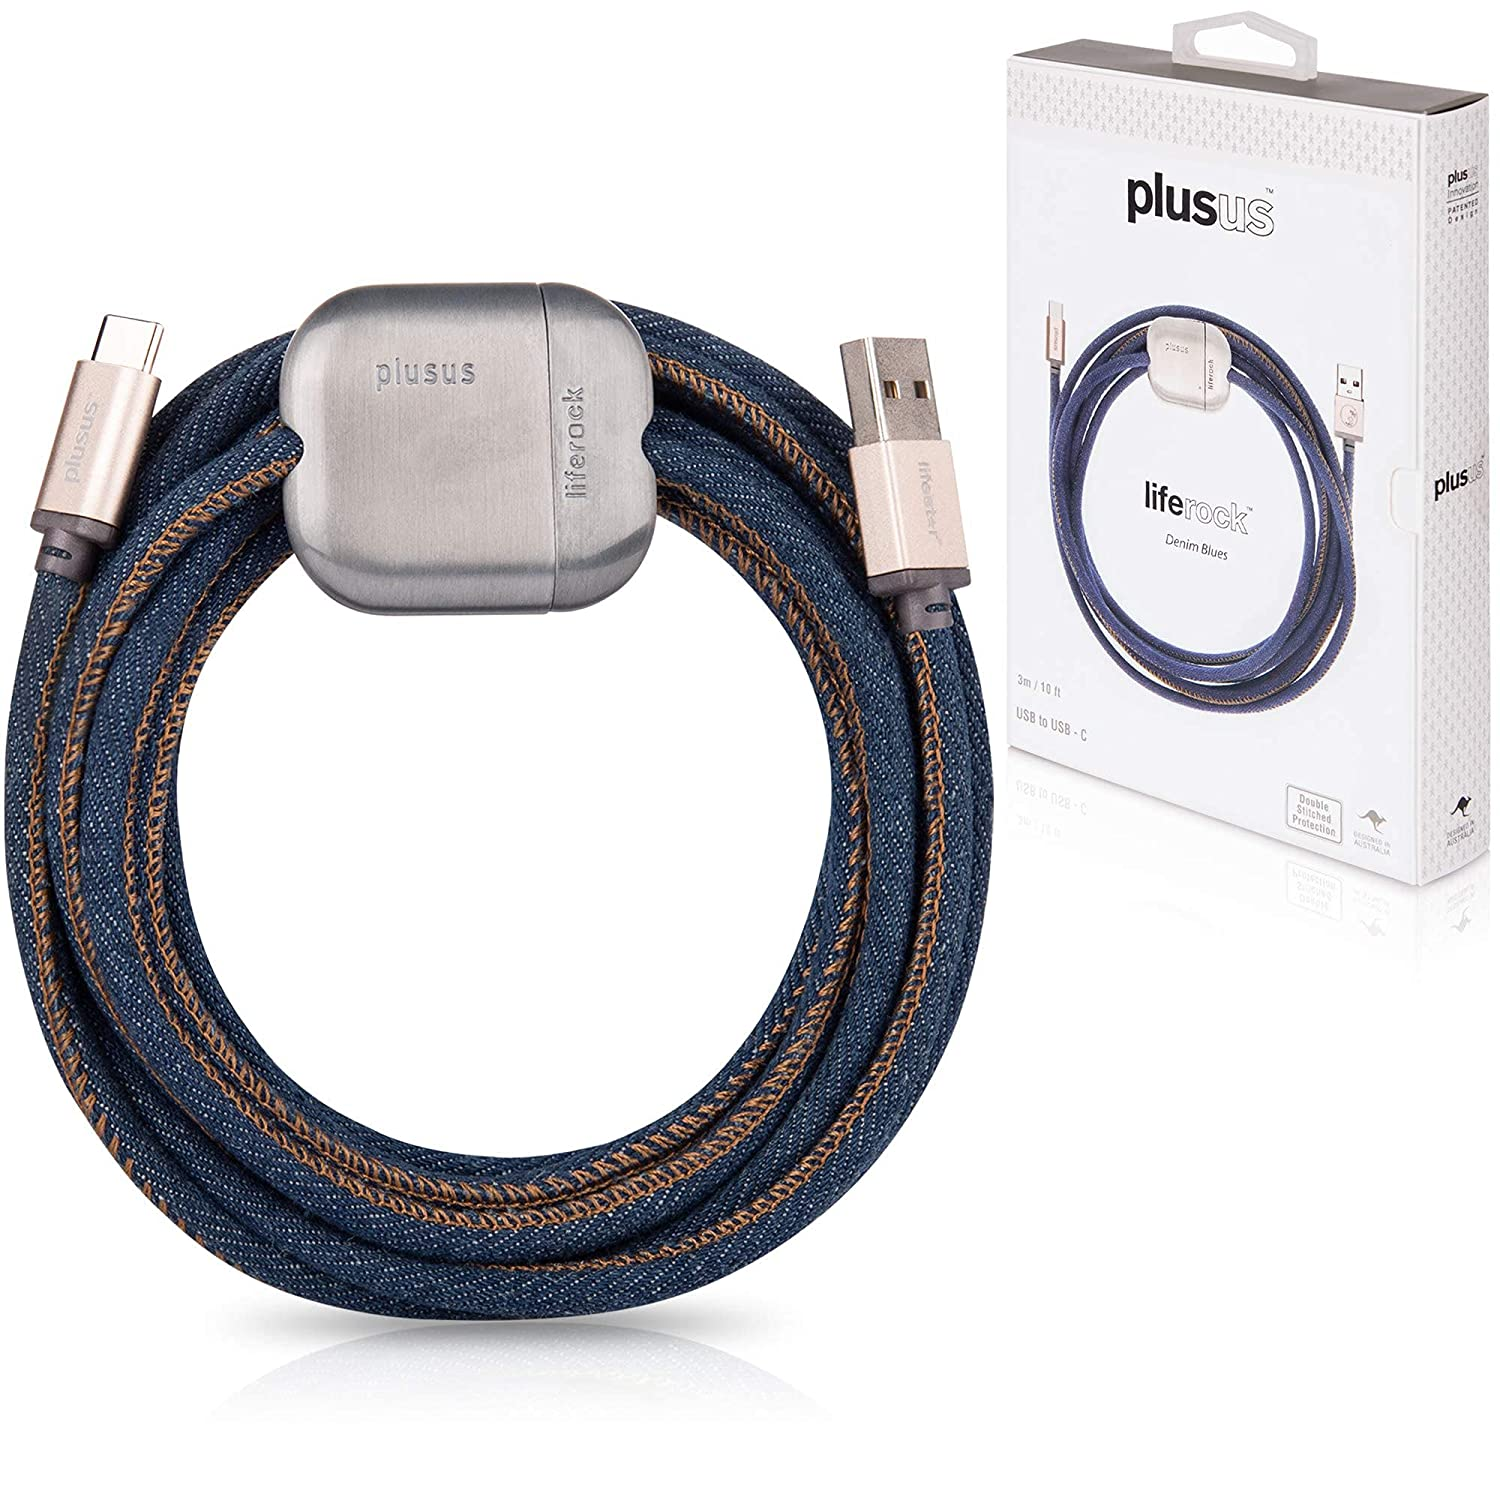 PlusUs LifeRock 10 New product!! ft 3m Extra Long Cable Super beauty product restock quality top USB to USB-C Handcra